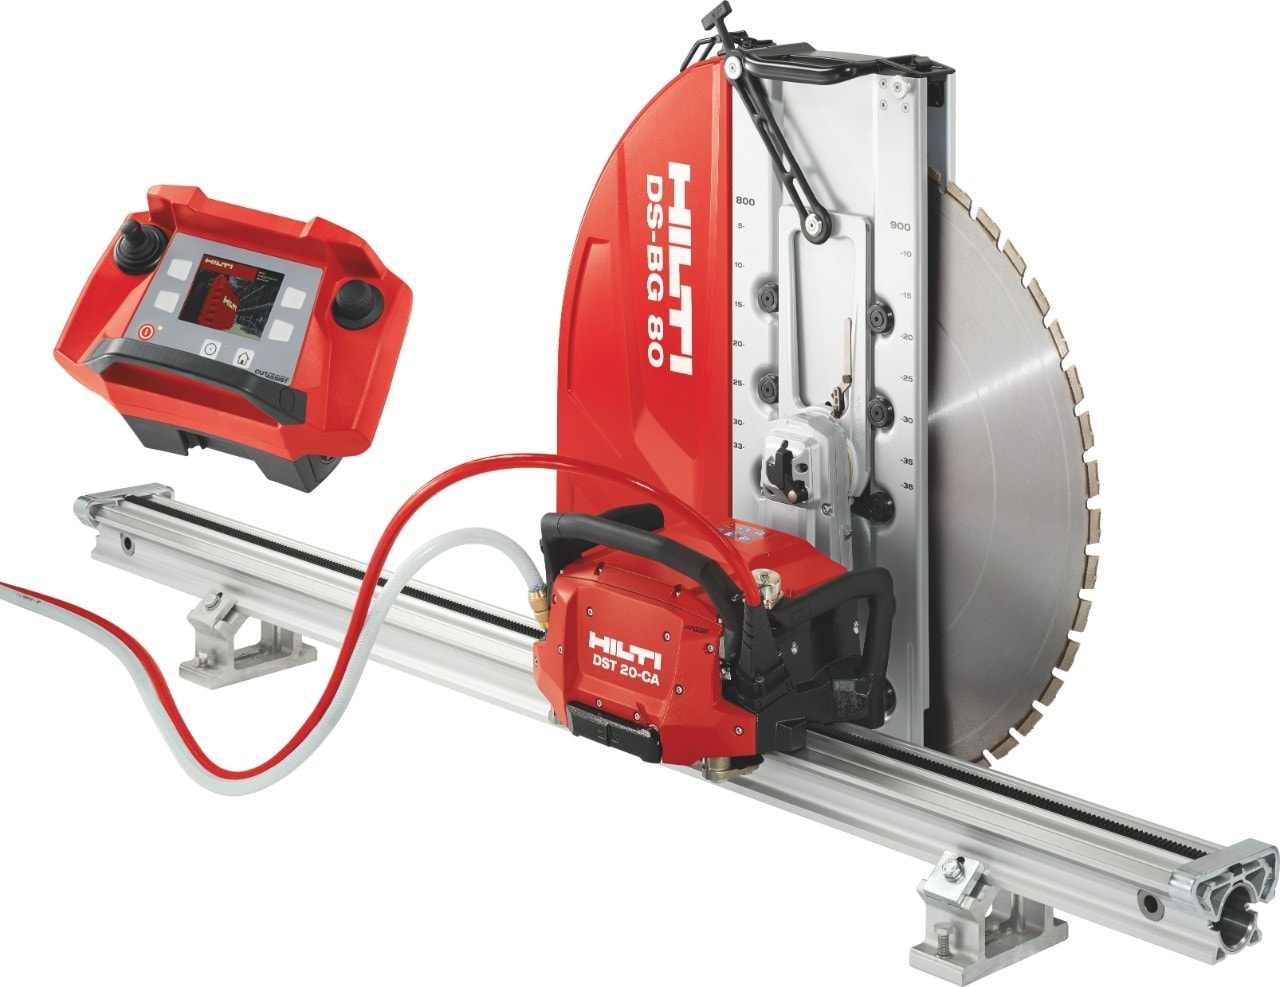 Hilti Electric diamond wall saw with remote control and no electrical box